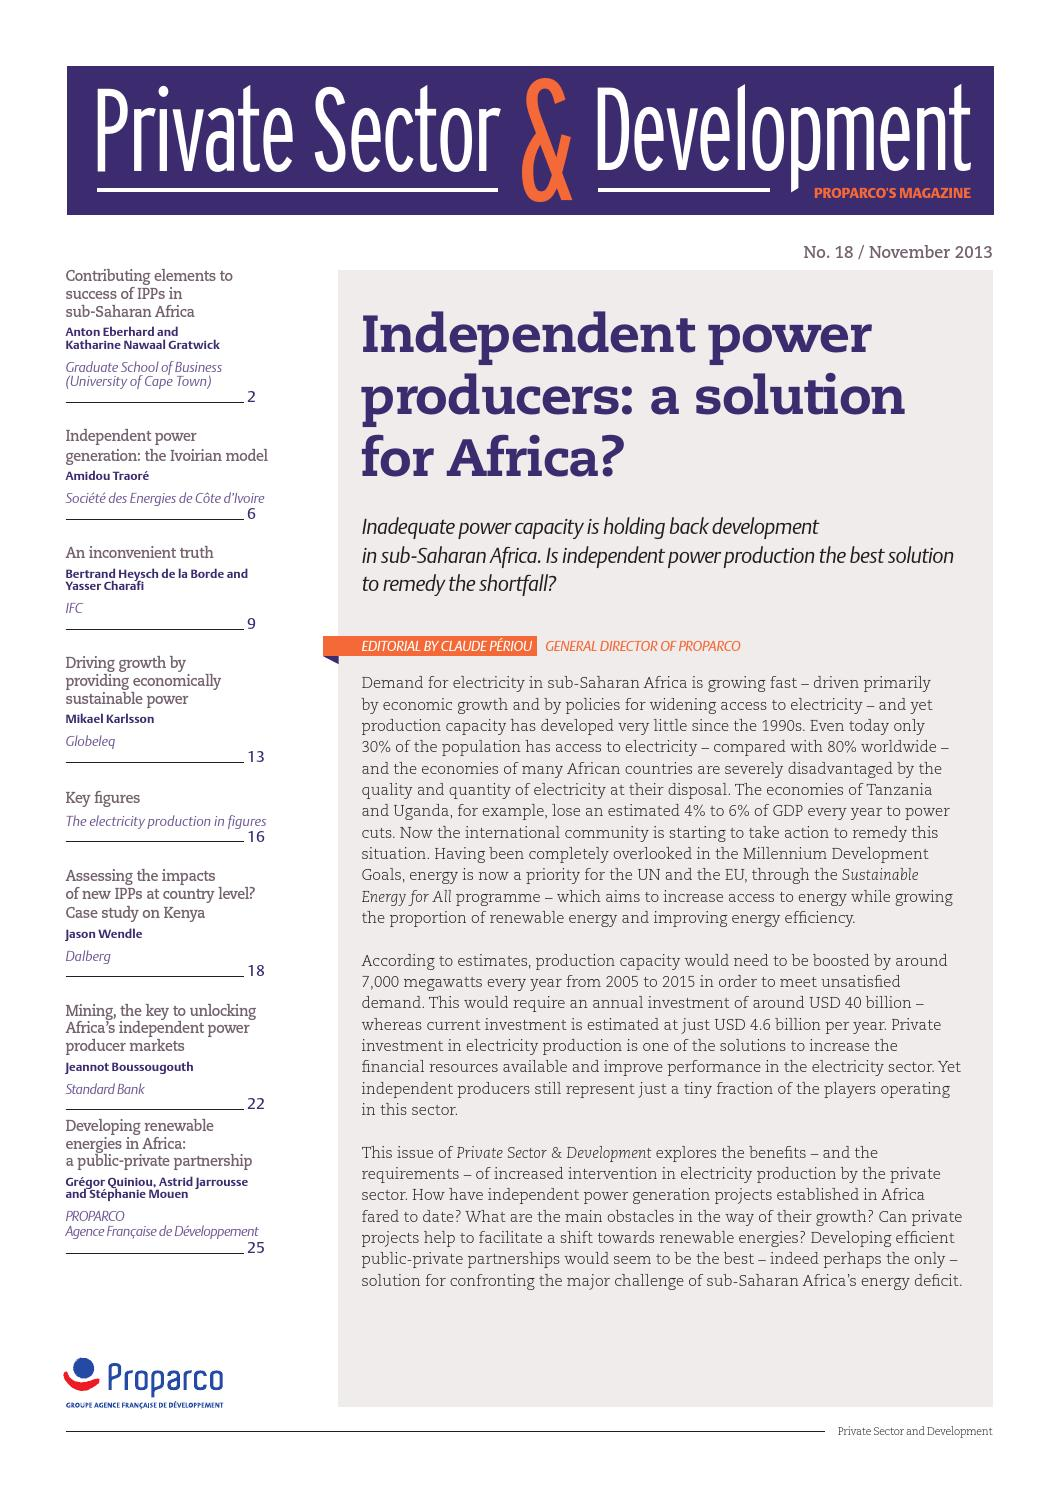 how to become an independent power producer